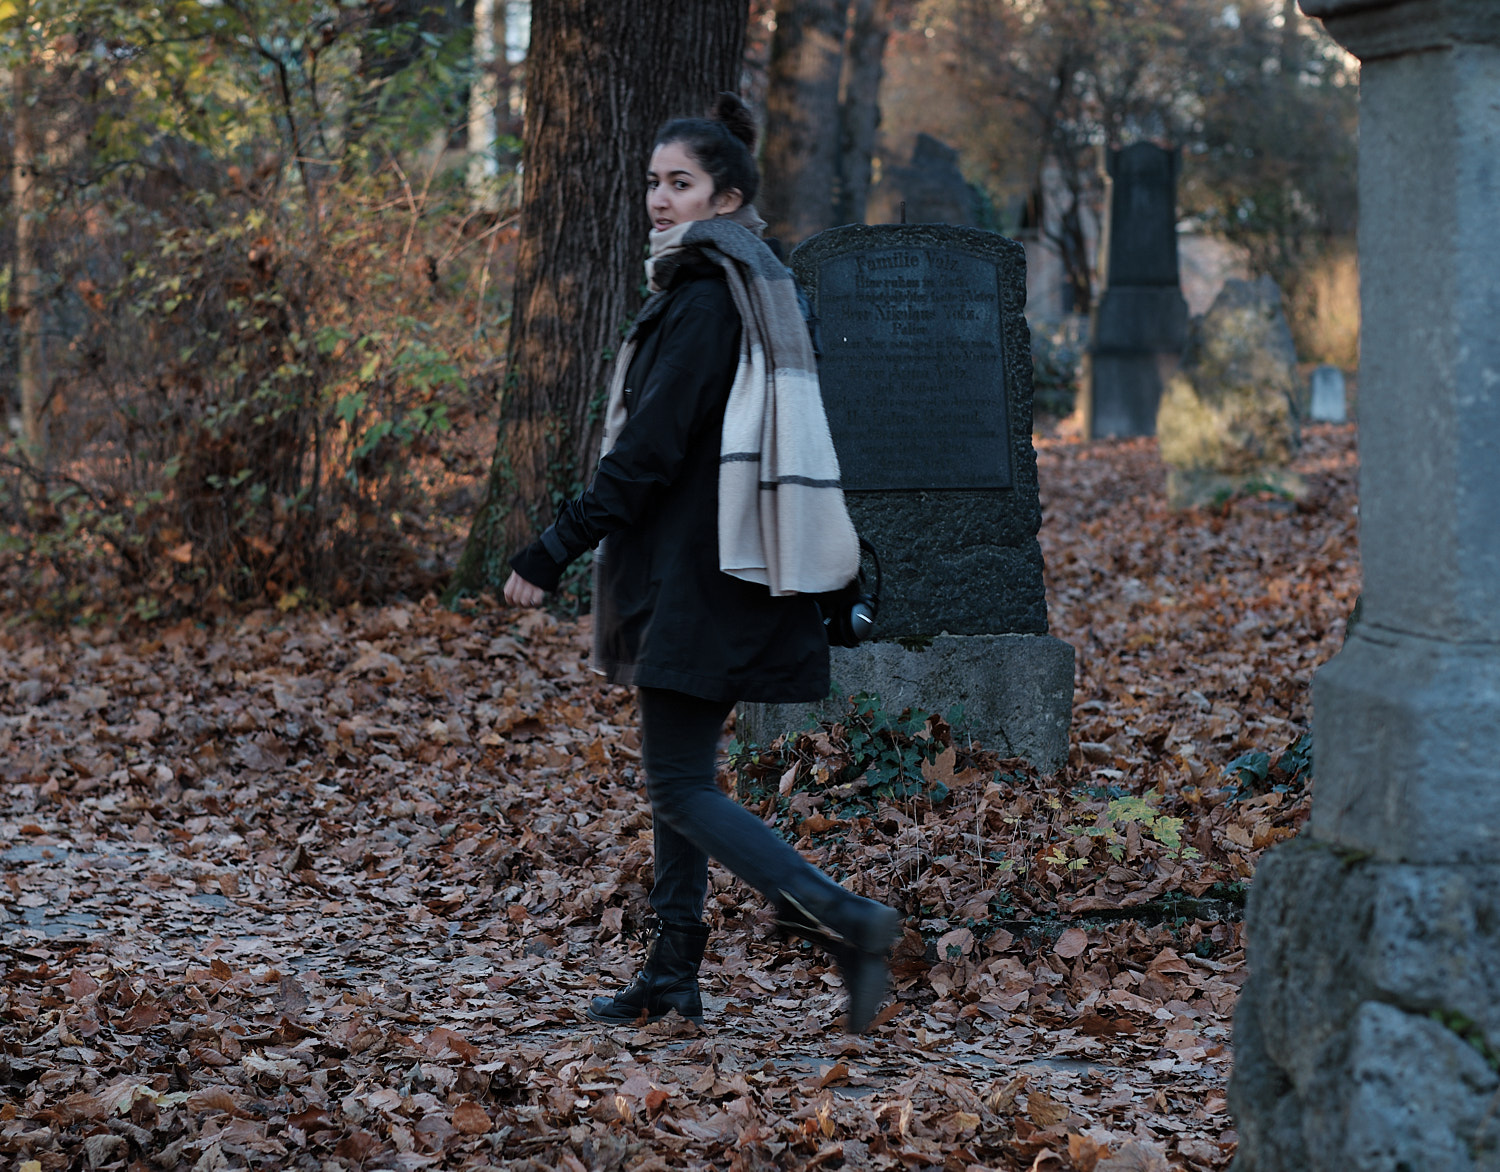 Ines at the alte noerdlicher Friedhof, Munich, photoshooting mid autumn at sunset